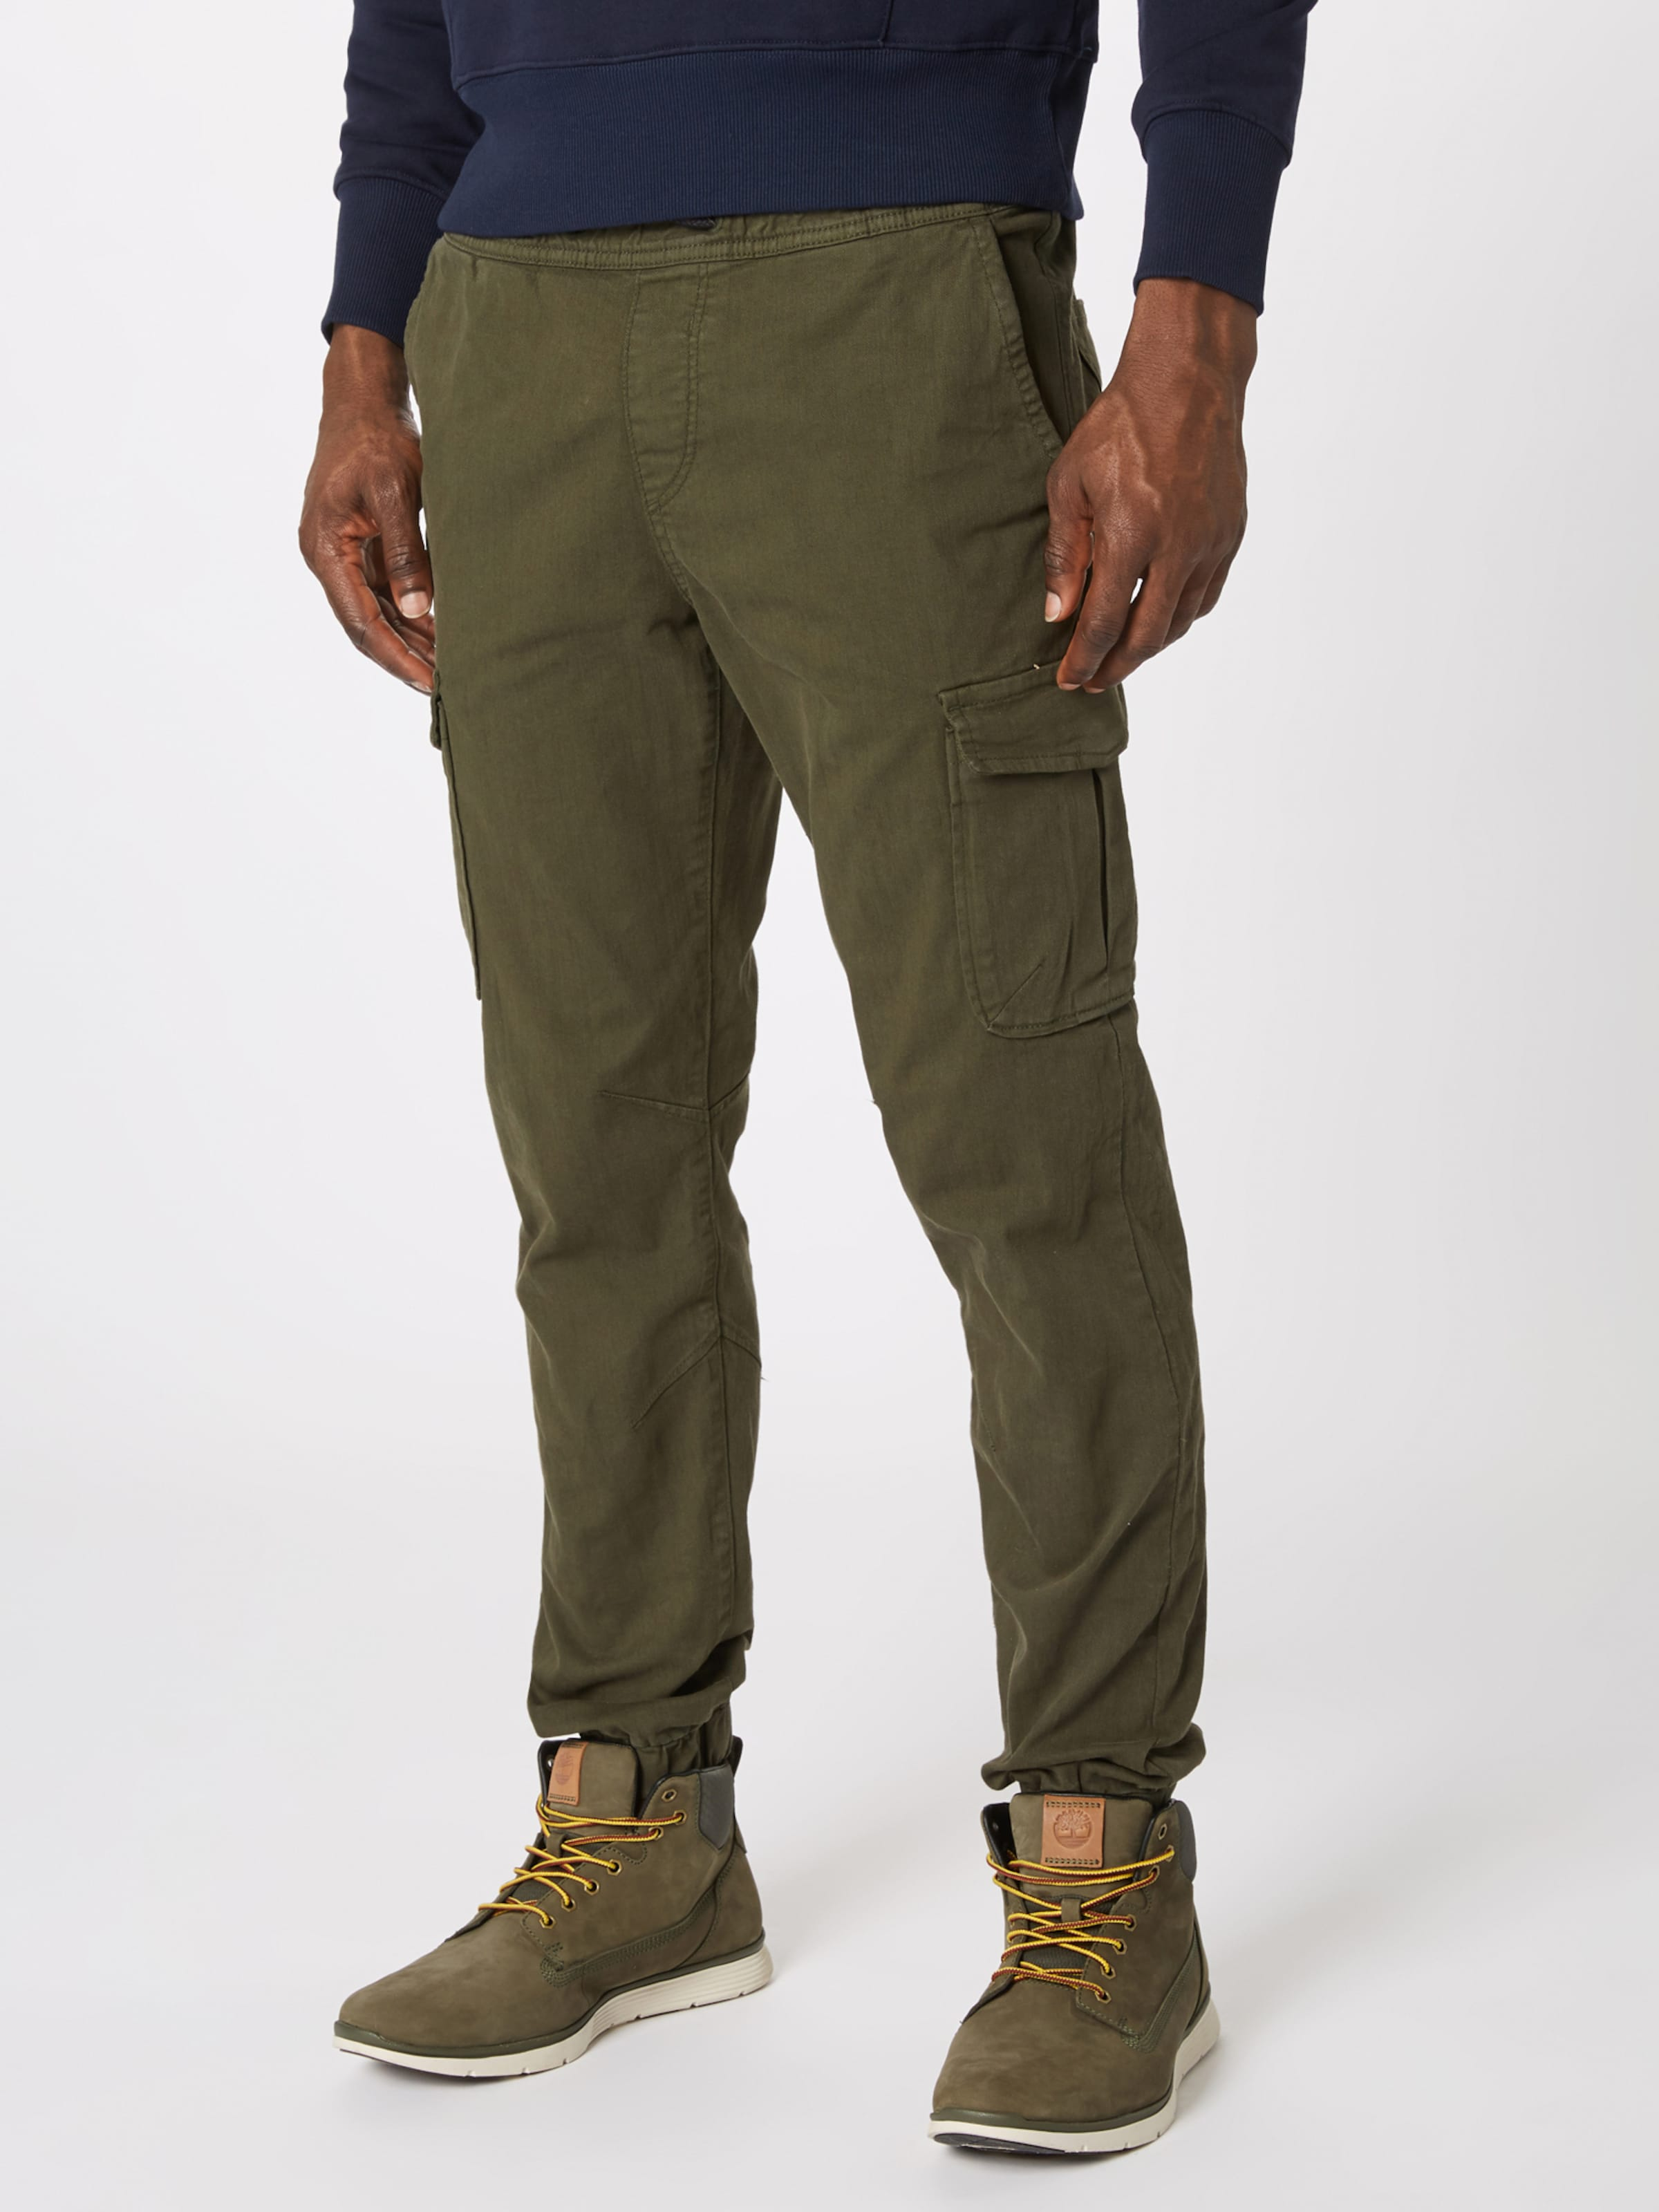 Pantalon Cargo En Tailor Denim Marron Tom xdshBroQCt